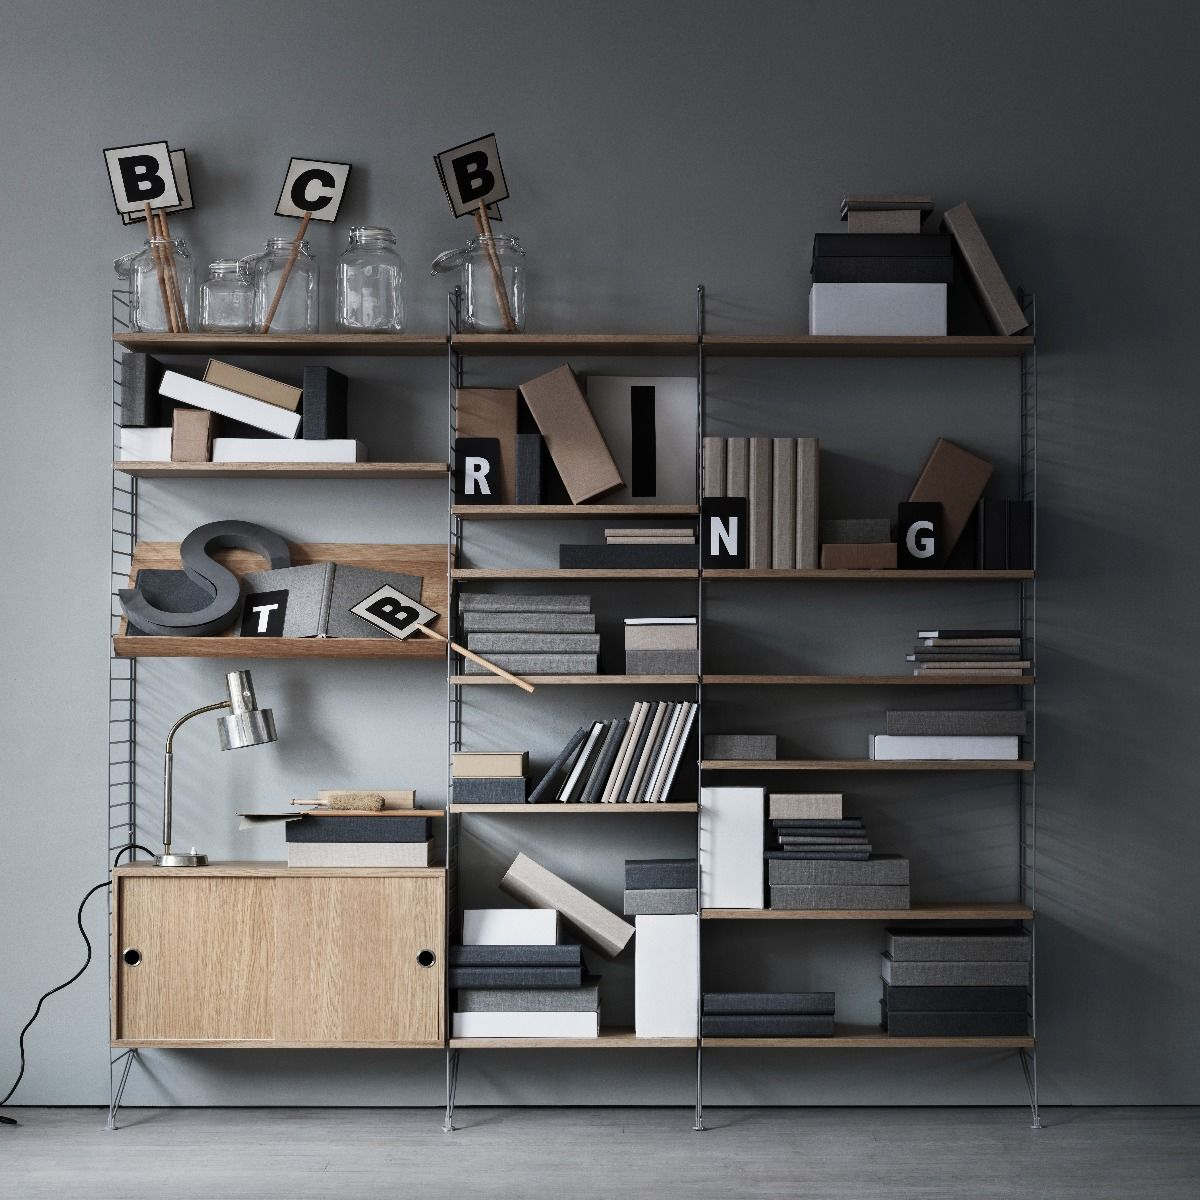 String shelving system in oak and grey including 58 x 30cm shelves